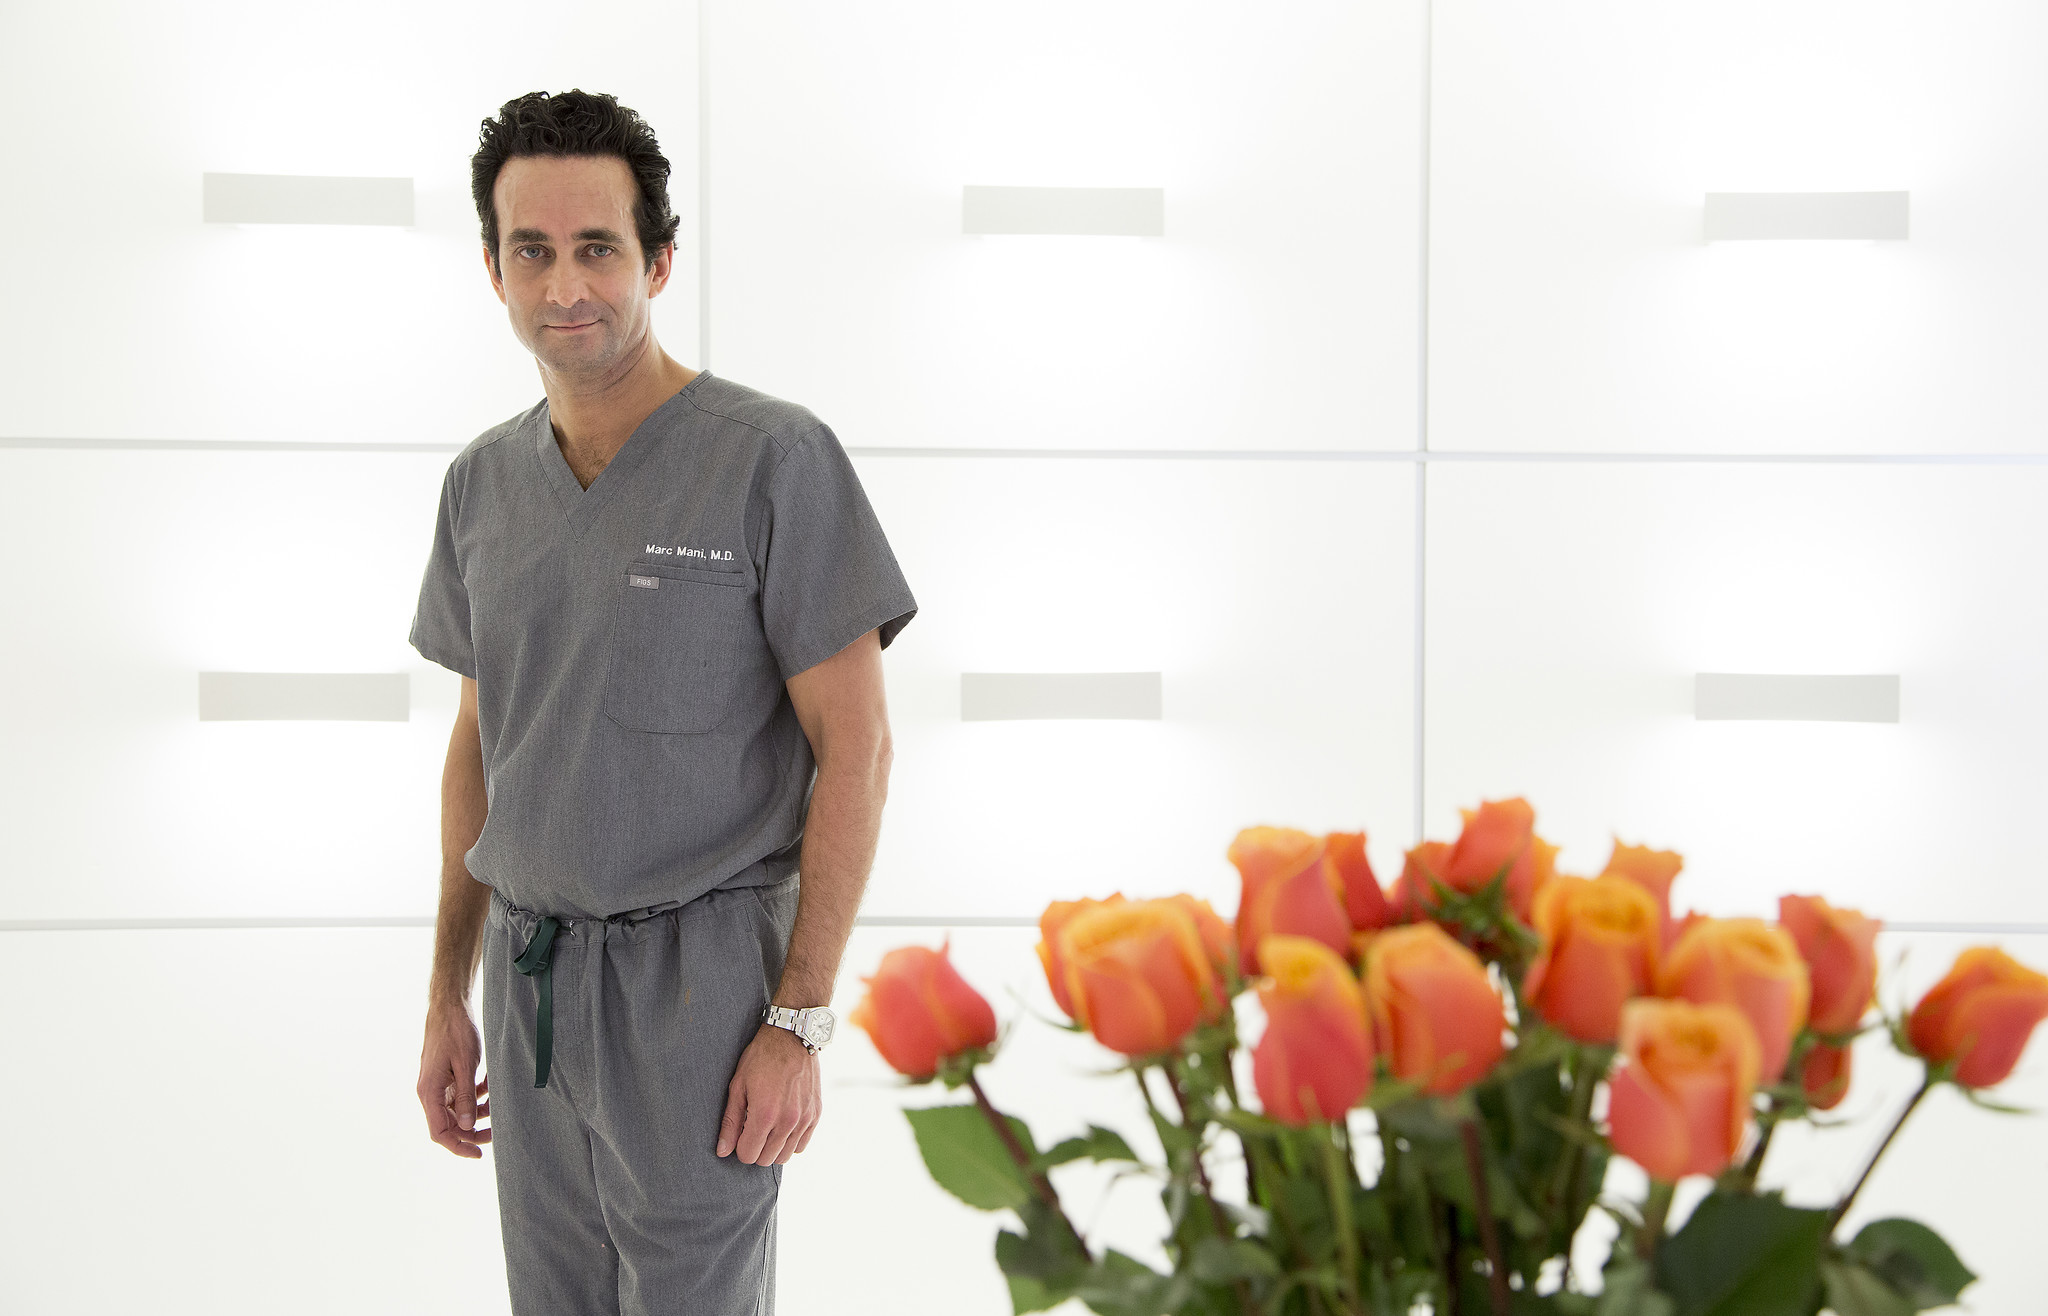 BEVERLY HILLS, CA - MAY 22, 2017: Marc Mani performs MIST (Minimally Invasive Stromal Transfer), an